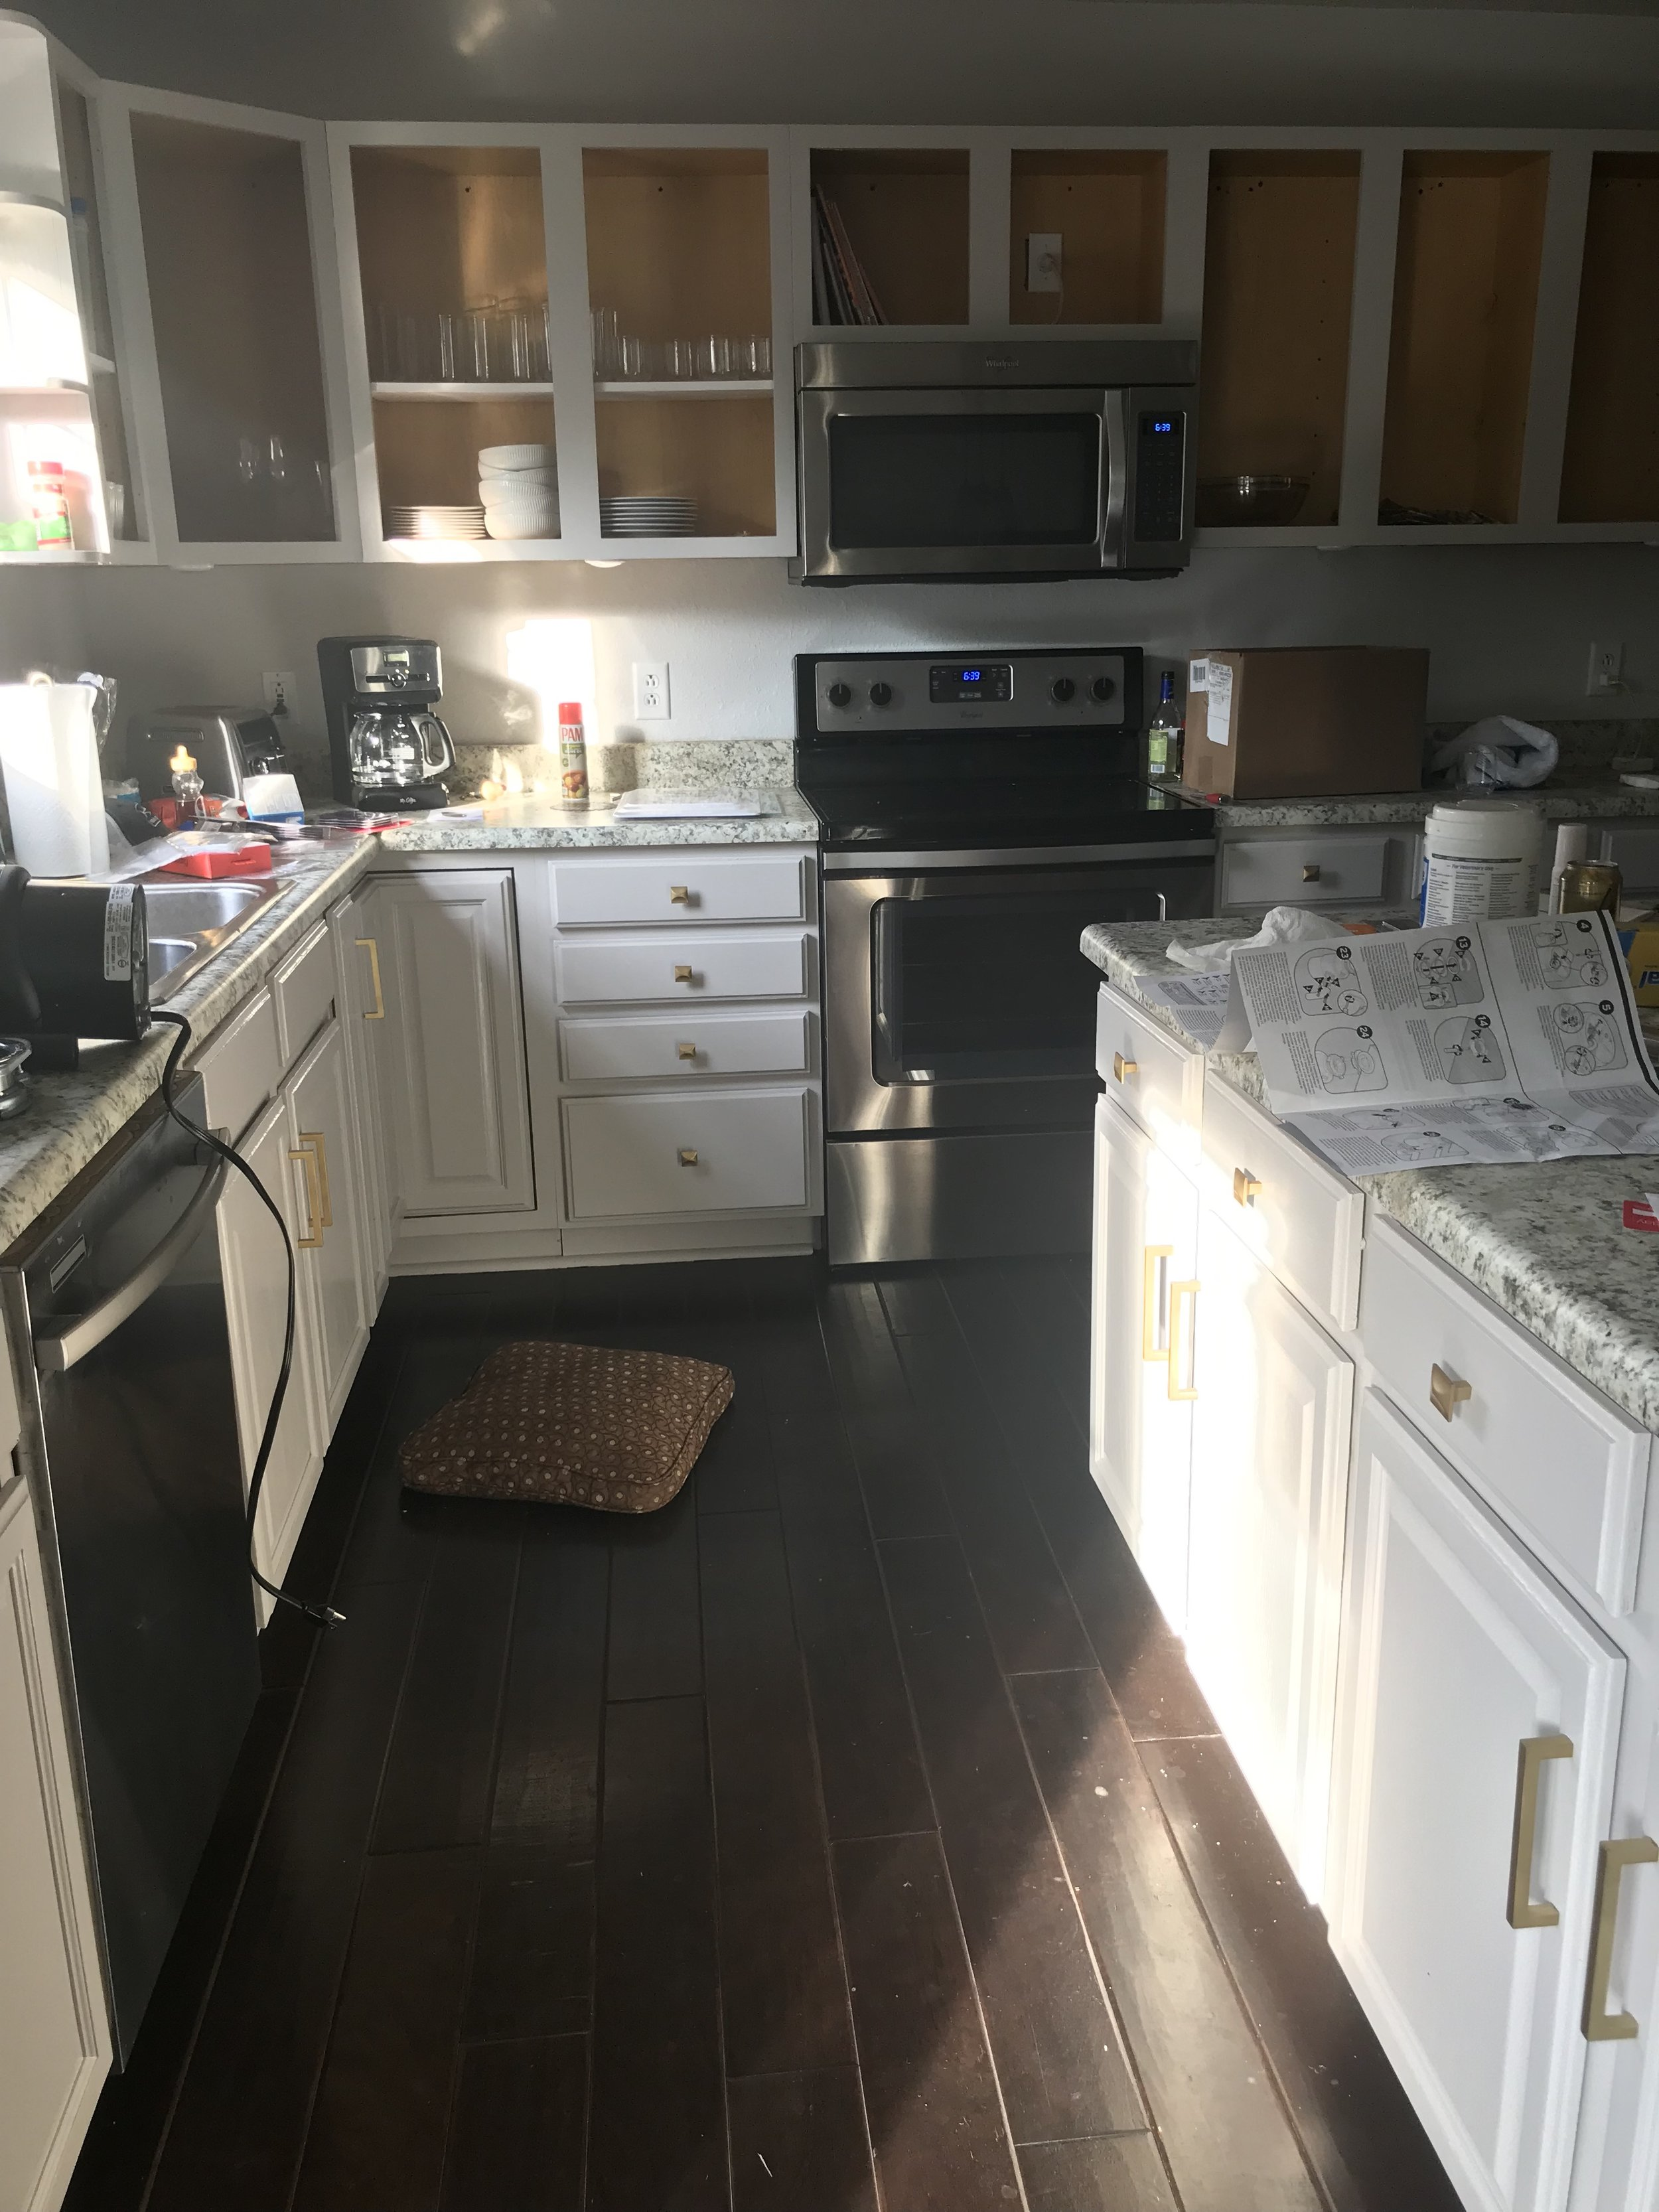 DURING: Kitchen cabinets halfway finished. Disregard the mess - we are attempting to replace the broken garbage disposal and we have no idea what we're doing.